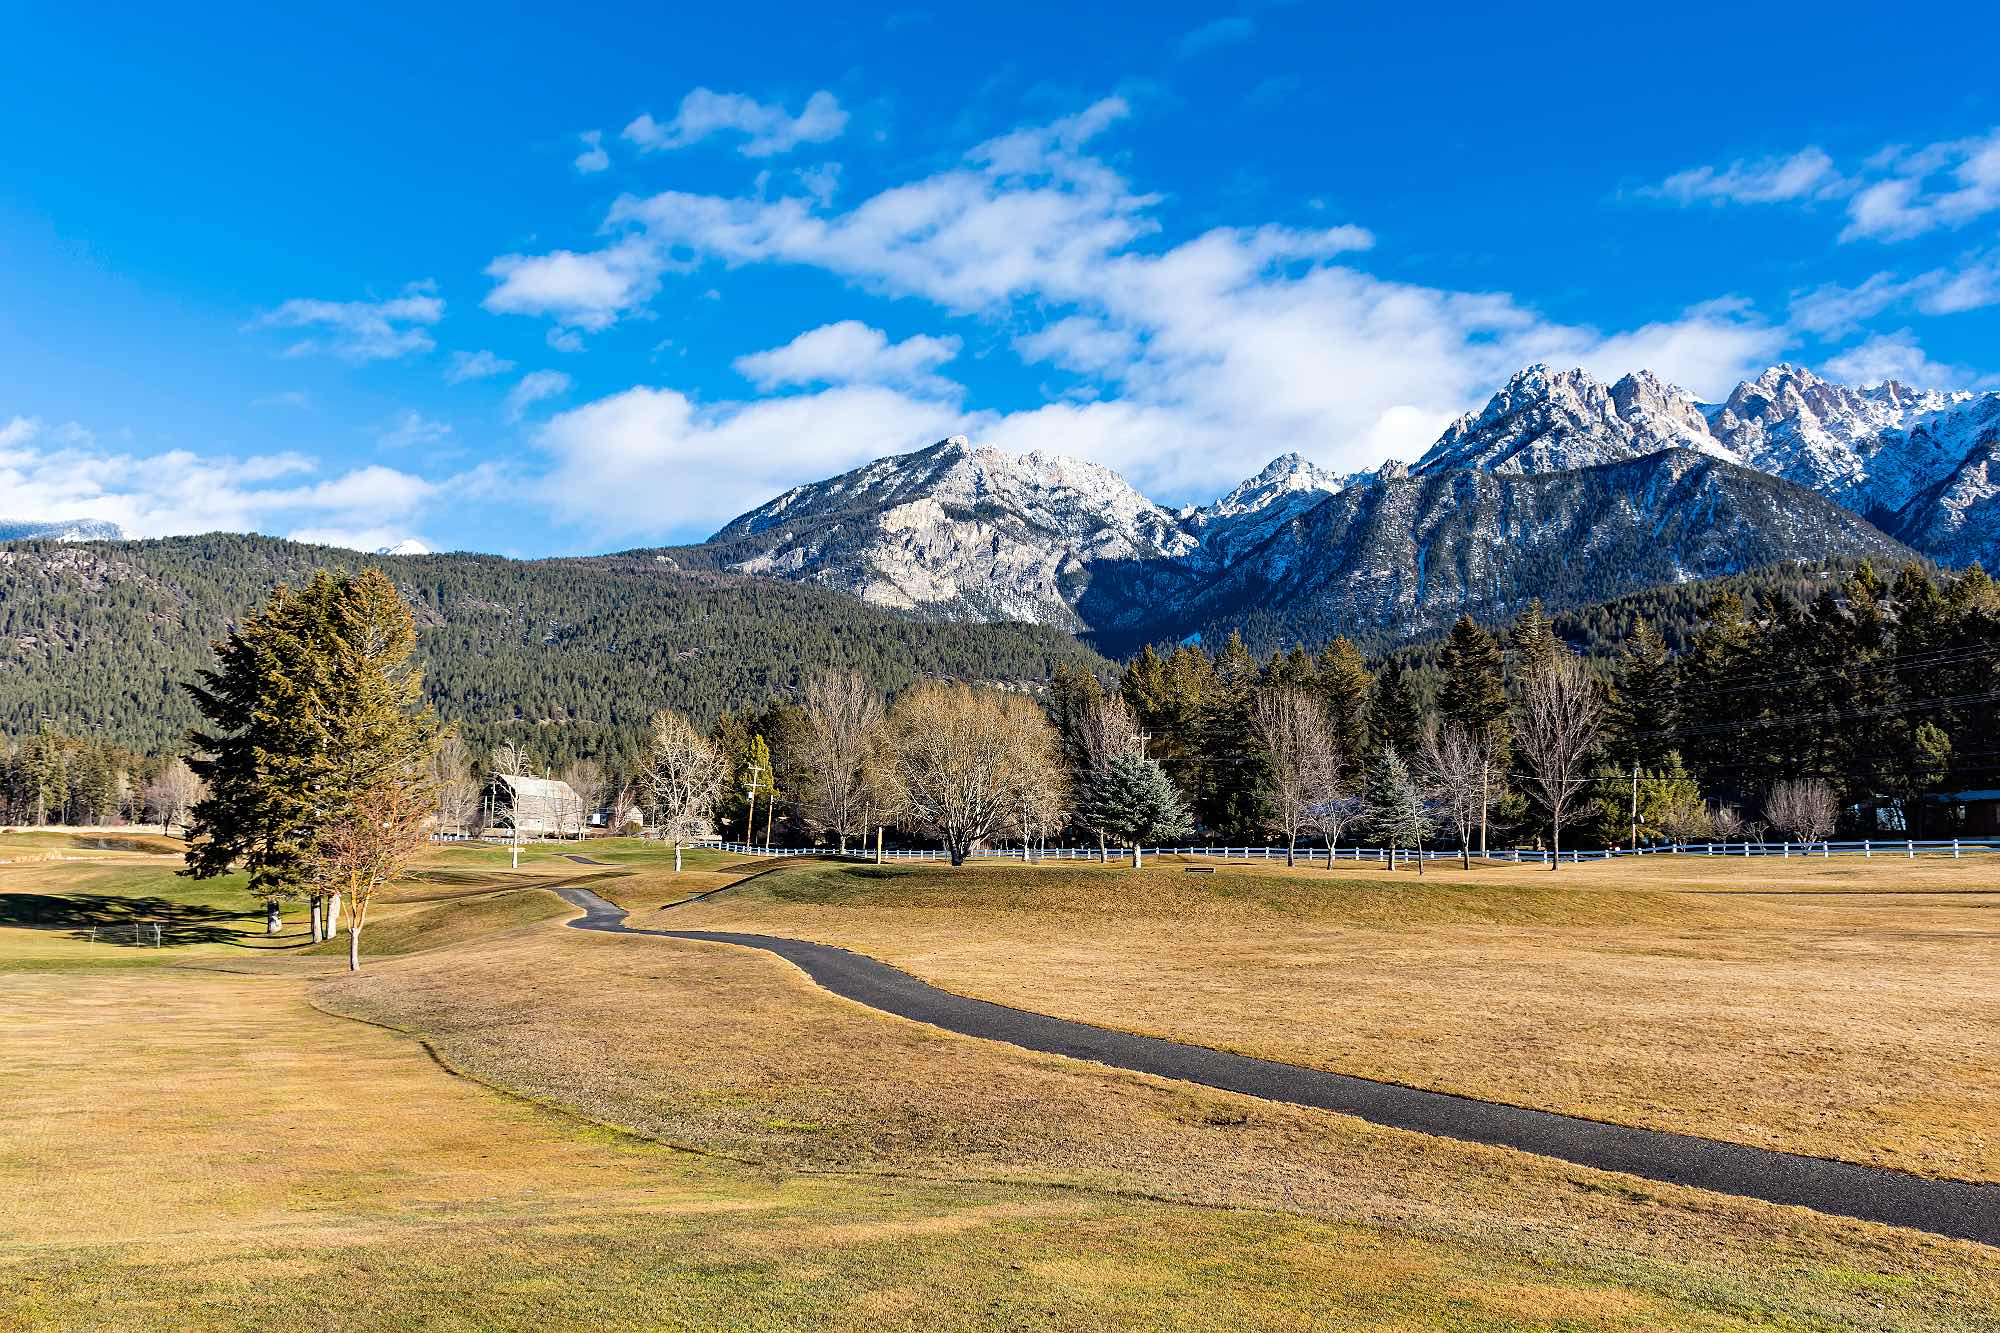 Invermere real estate listings and golf course properties for sale